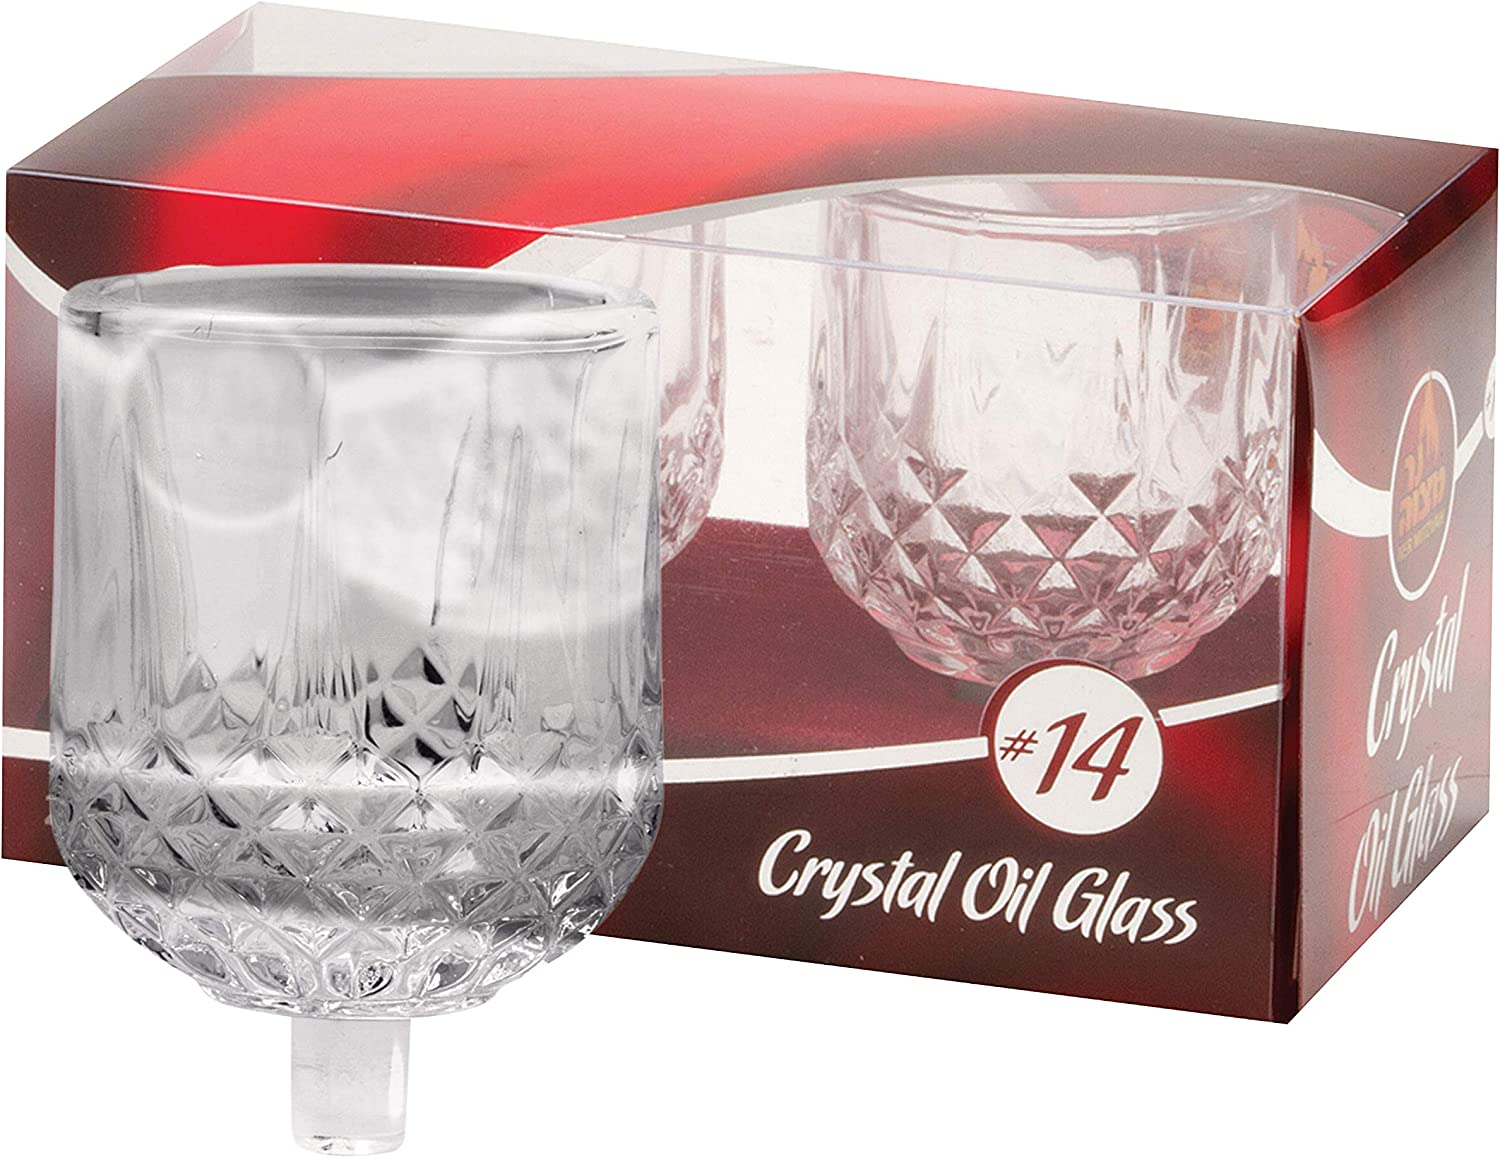 Ner Mitzvah Shabbos Candle Glass Oil Cups – Crystal Looking Elegant Holders for Oil for Shabbat and Hanukkah – 2 Pack -Durable Quality, Long-Lasting